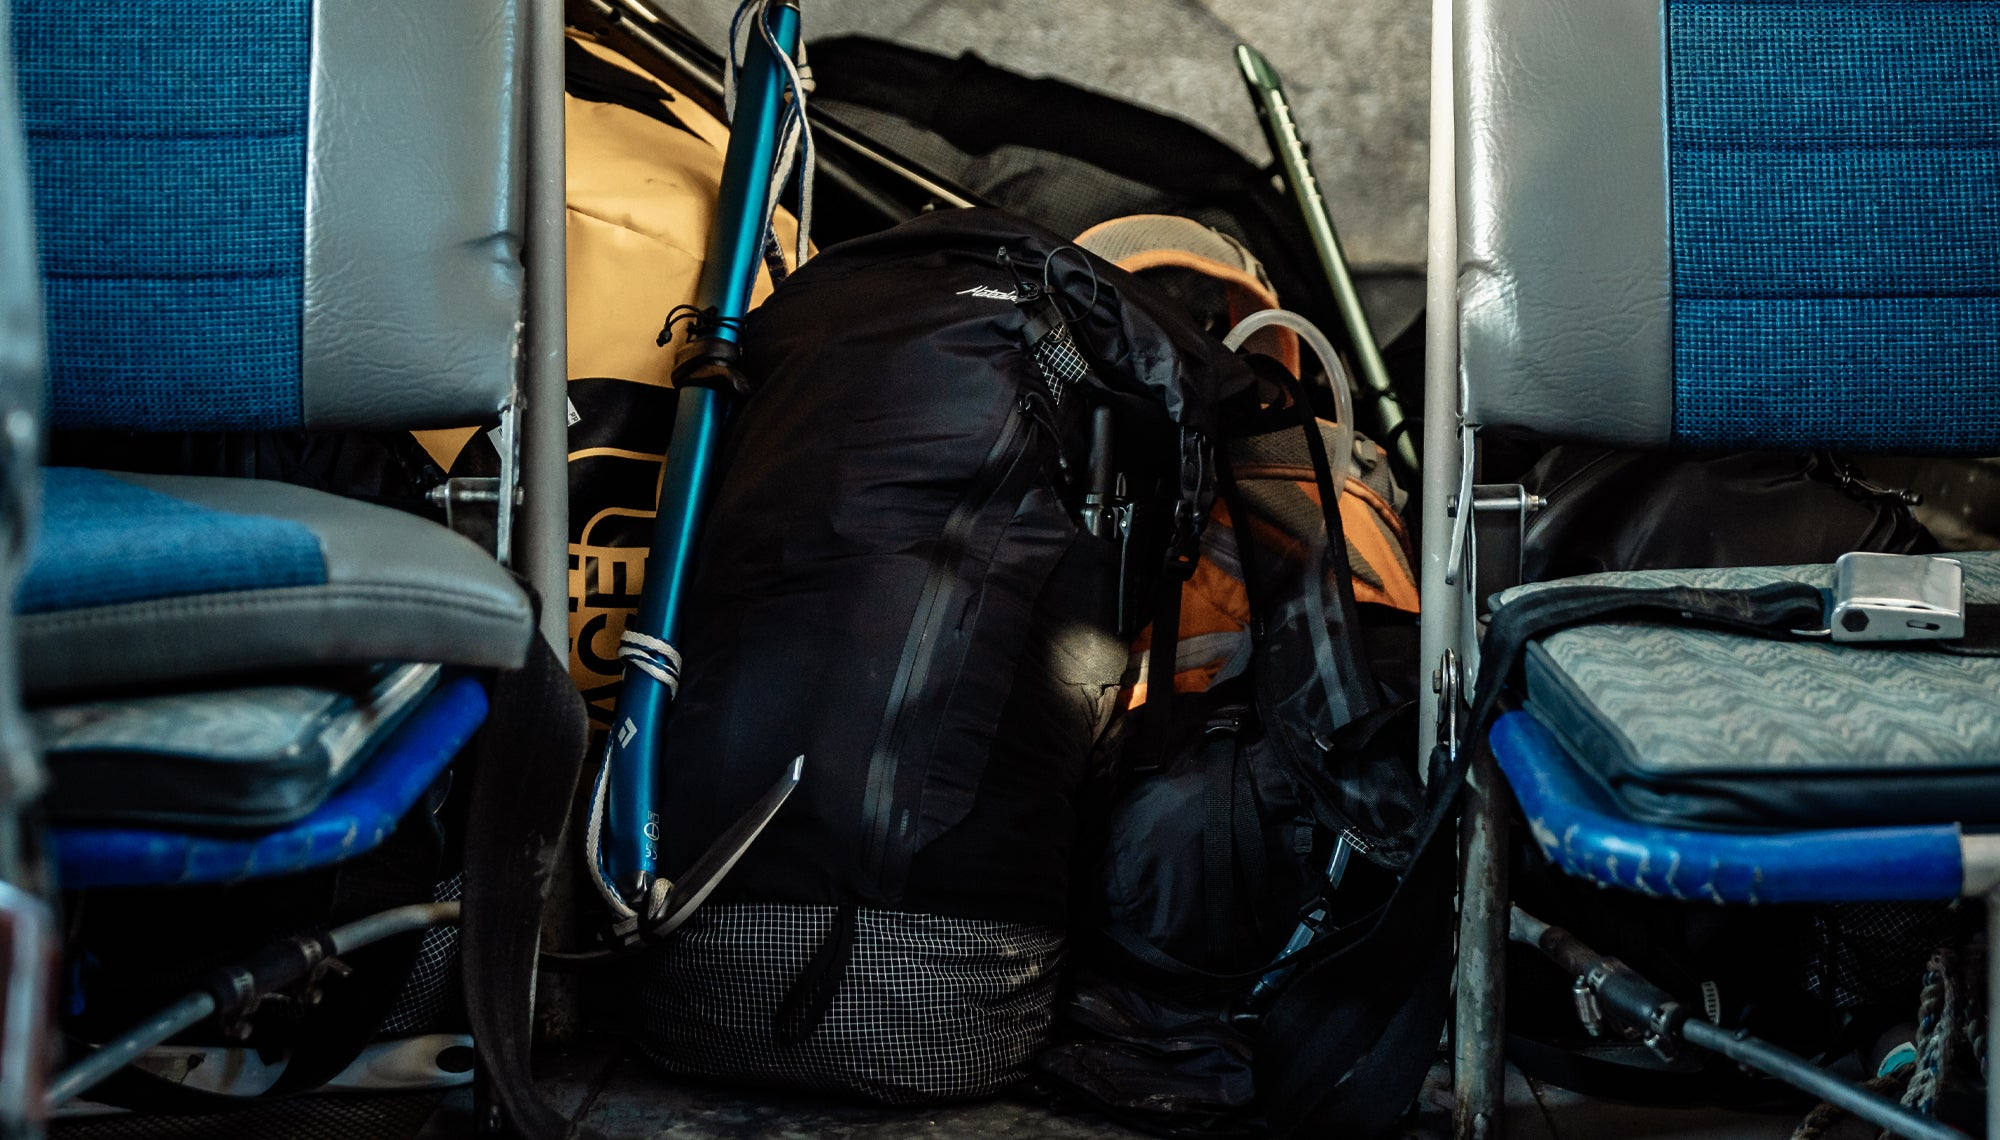 Backpack in a pile of gear between plane seats